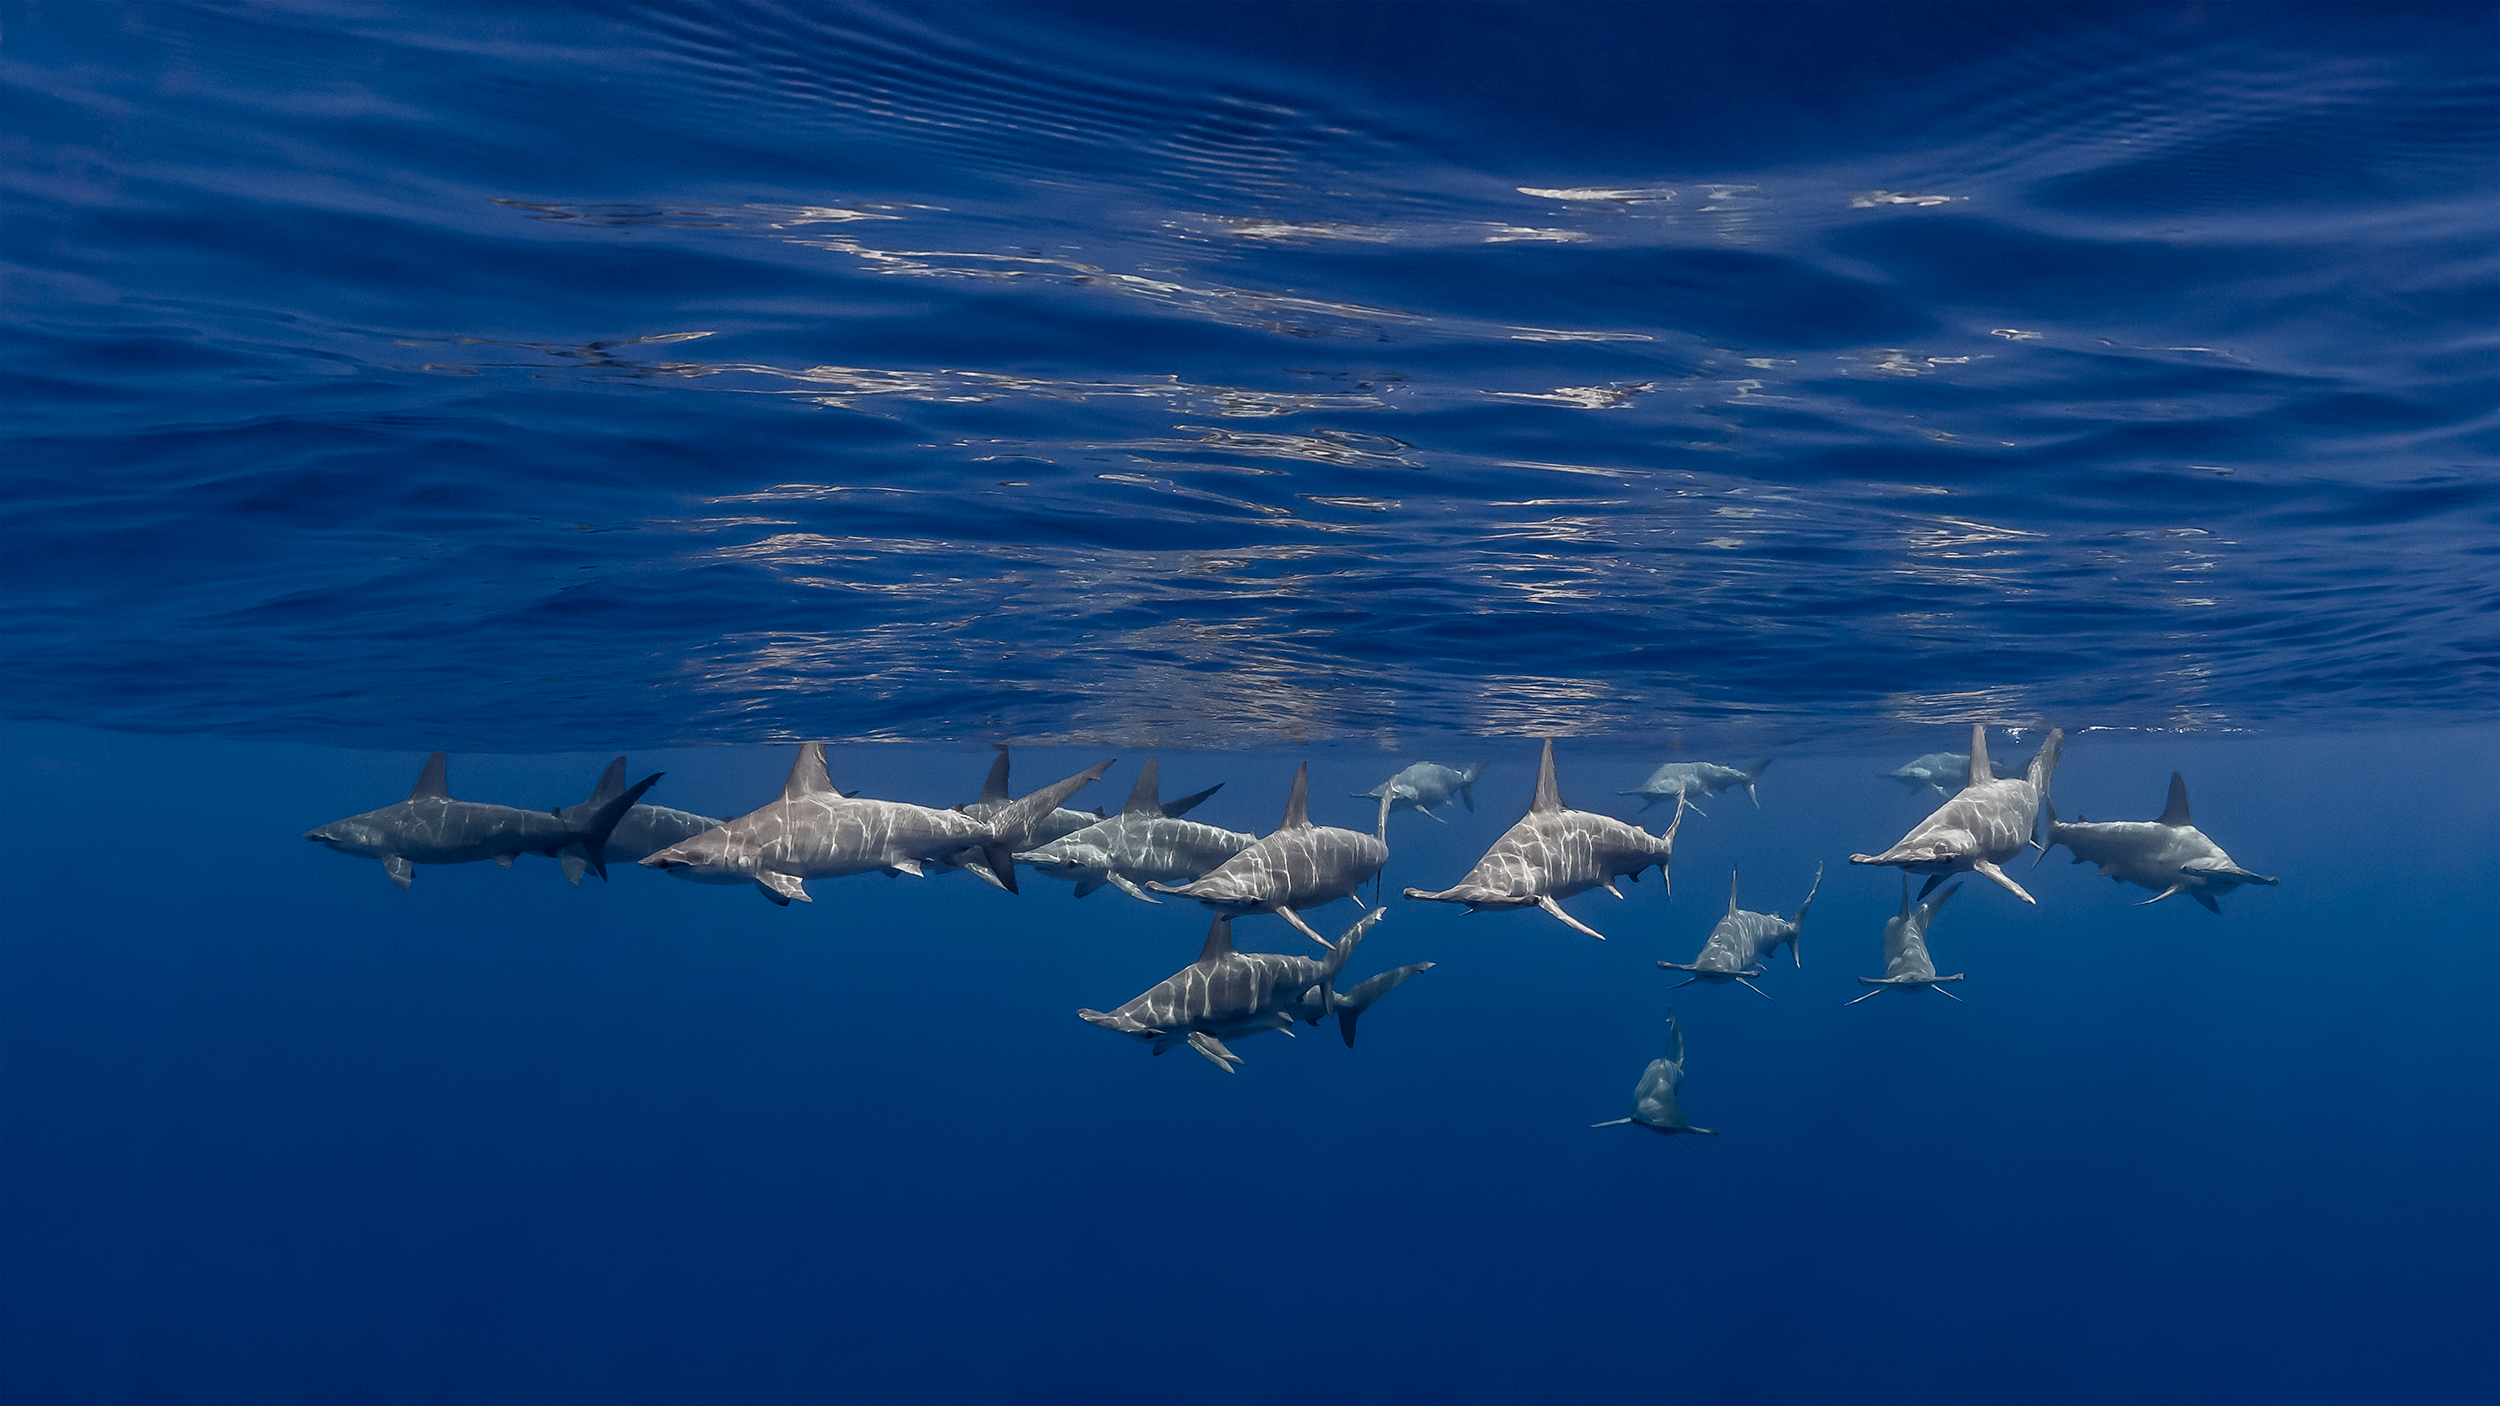 Kona Hawaii - approaching school of scalopped hammerheads, split